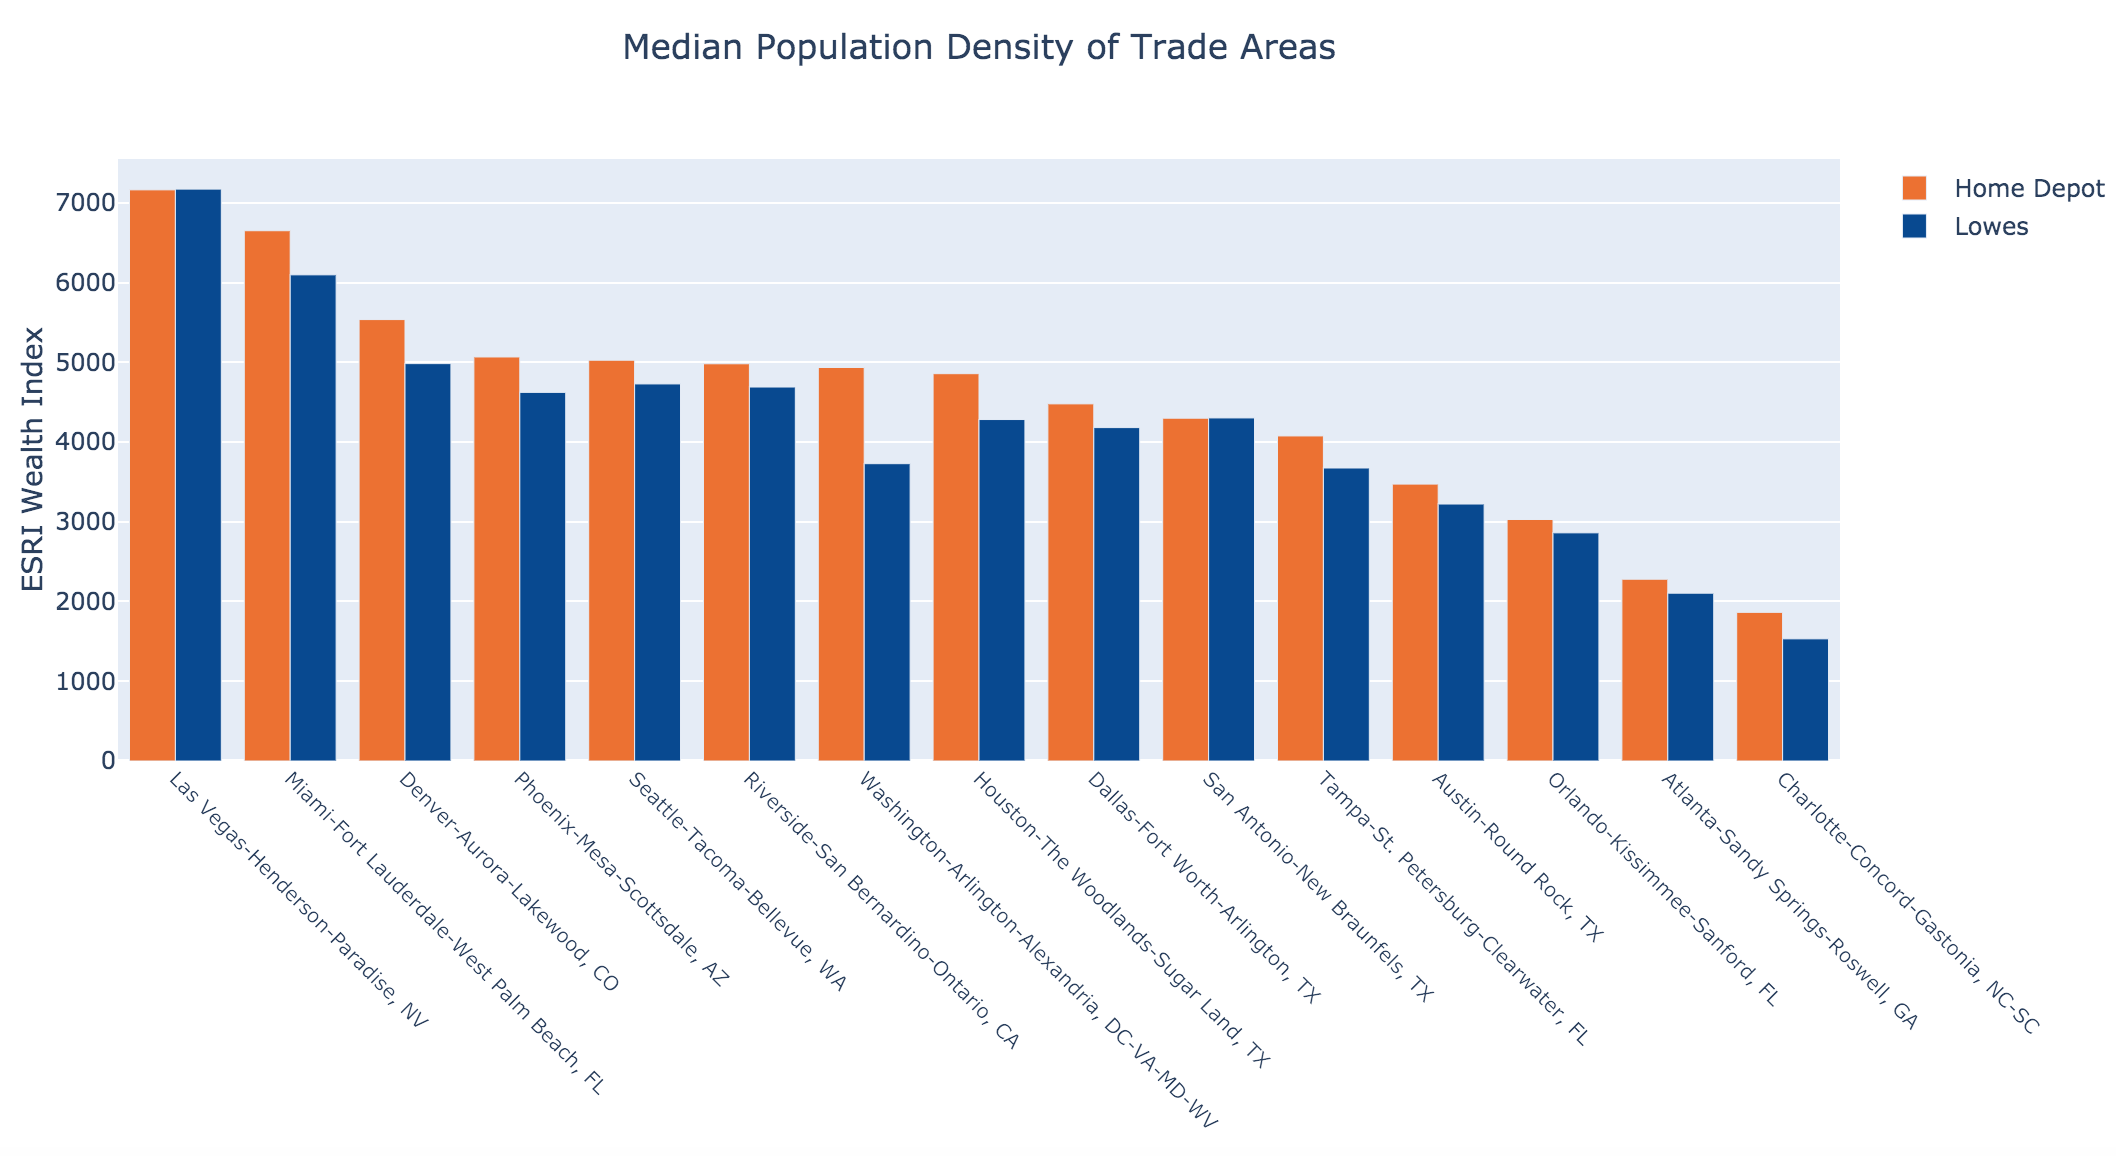 Median Population Density of Trade Areas